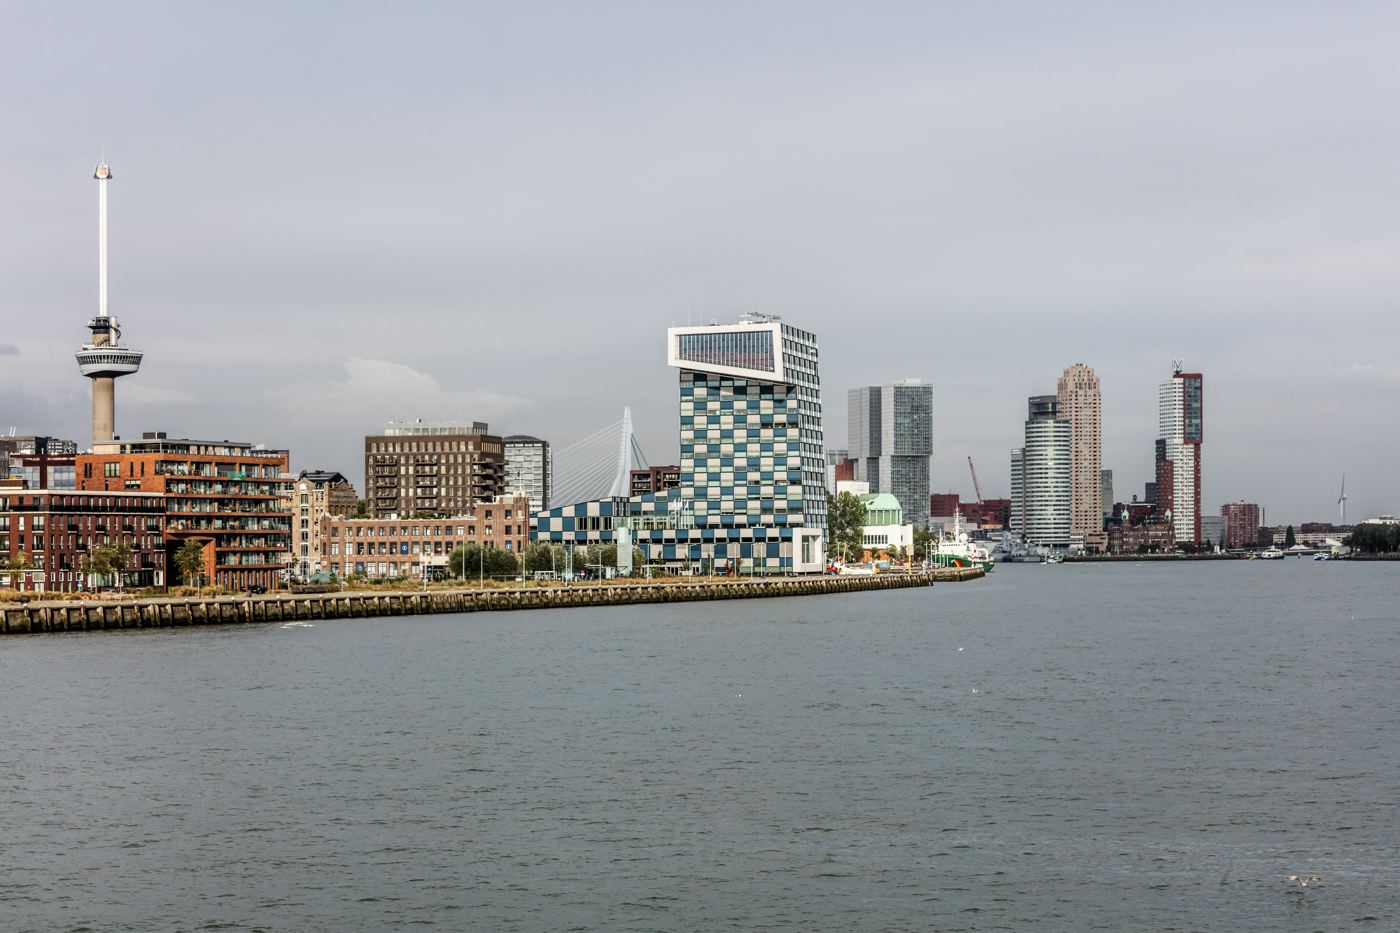 LDKphoto_ ROTTERDAM_SHIPPING-&-TRANSPORT-COLLEGE-010.jpg